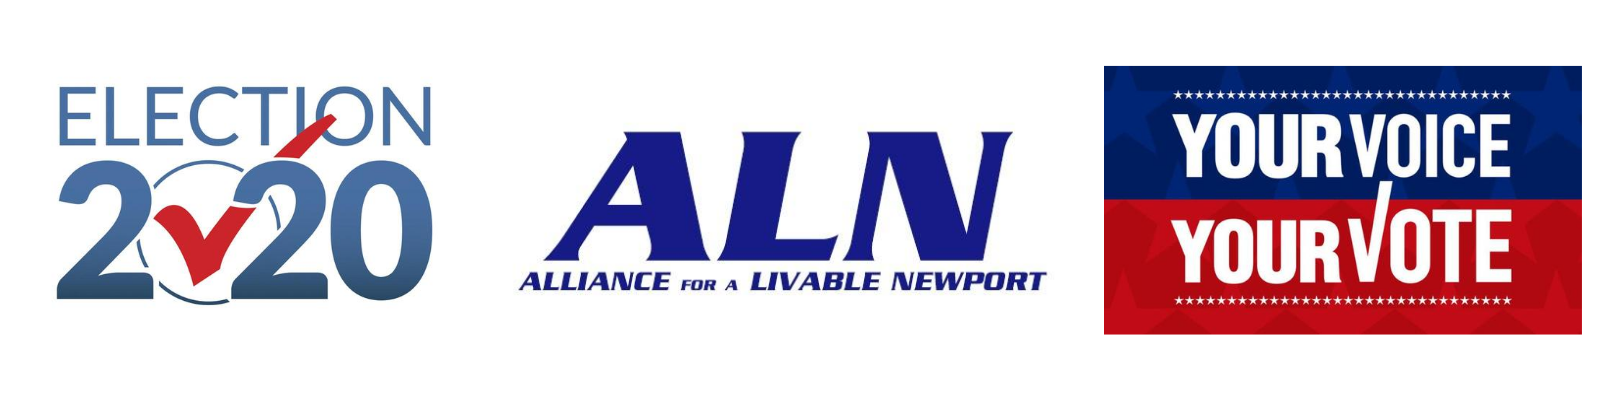 The Alliance for a Livable Newport